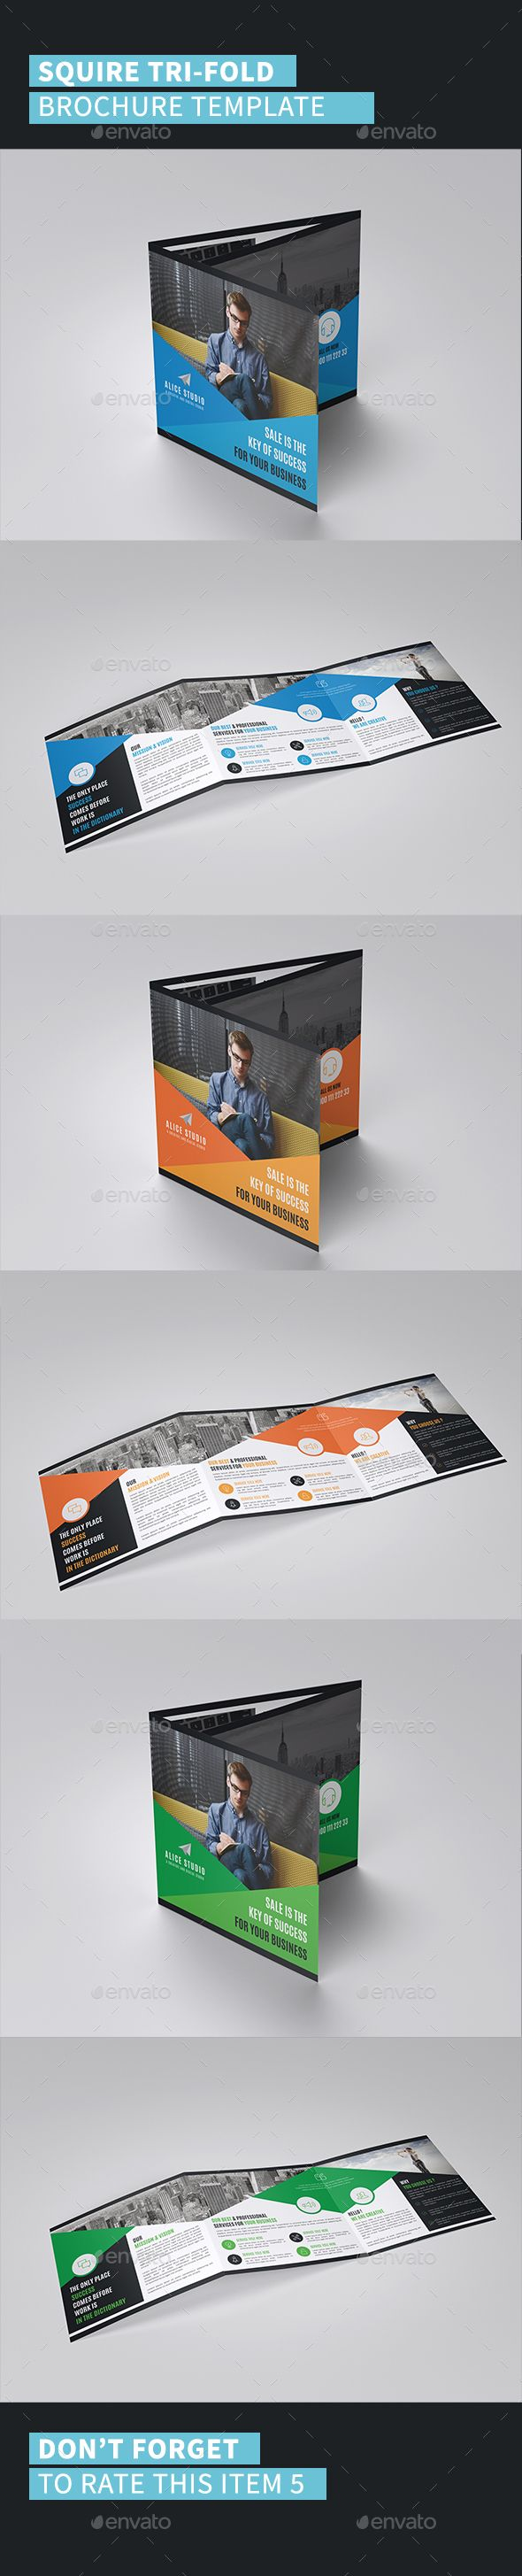 squire tri fold brochure template